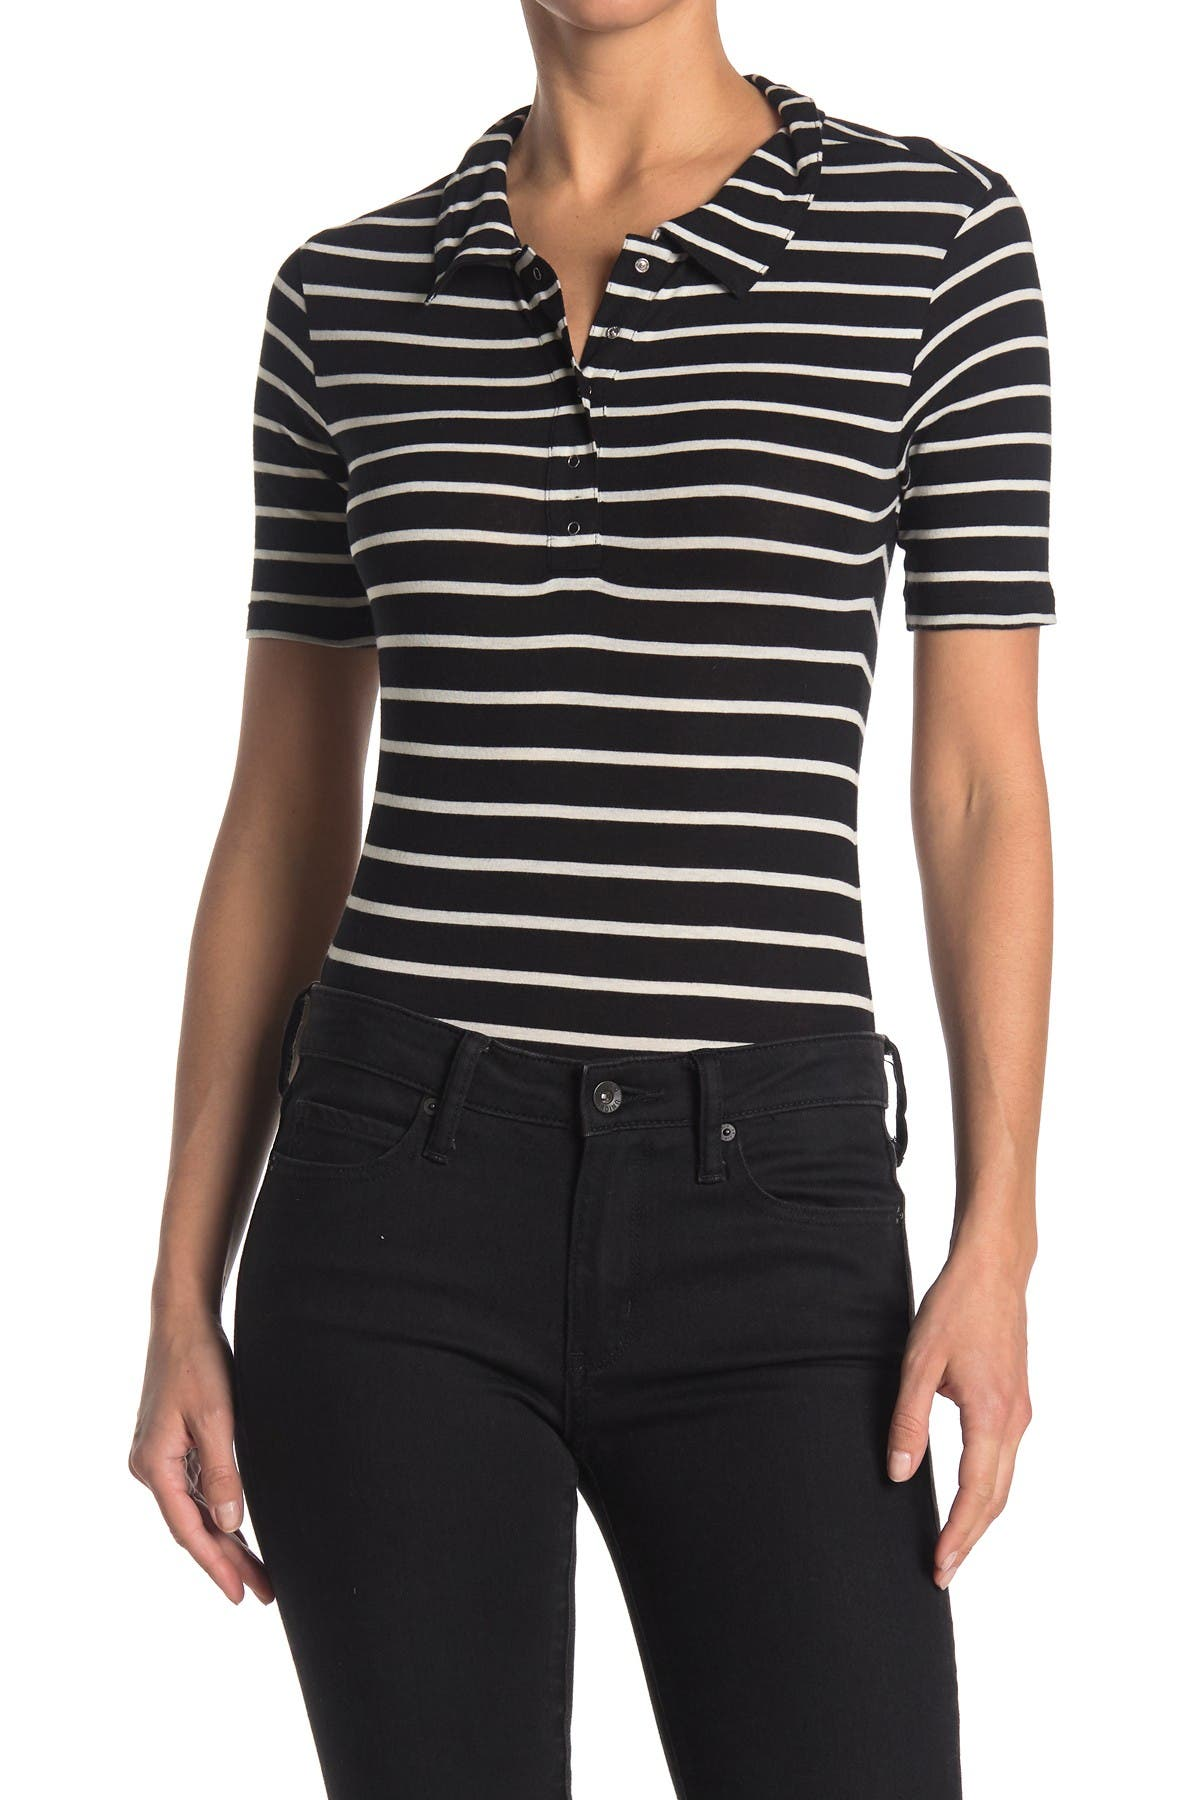 Image of Abound Stripe Print Short Sleeve Polo Bodysuit